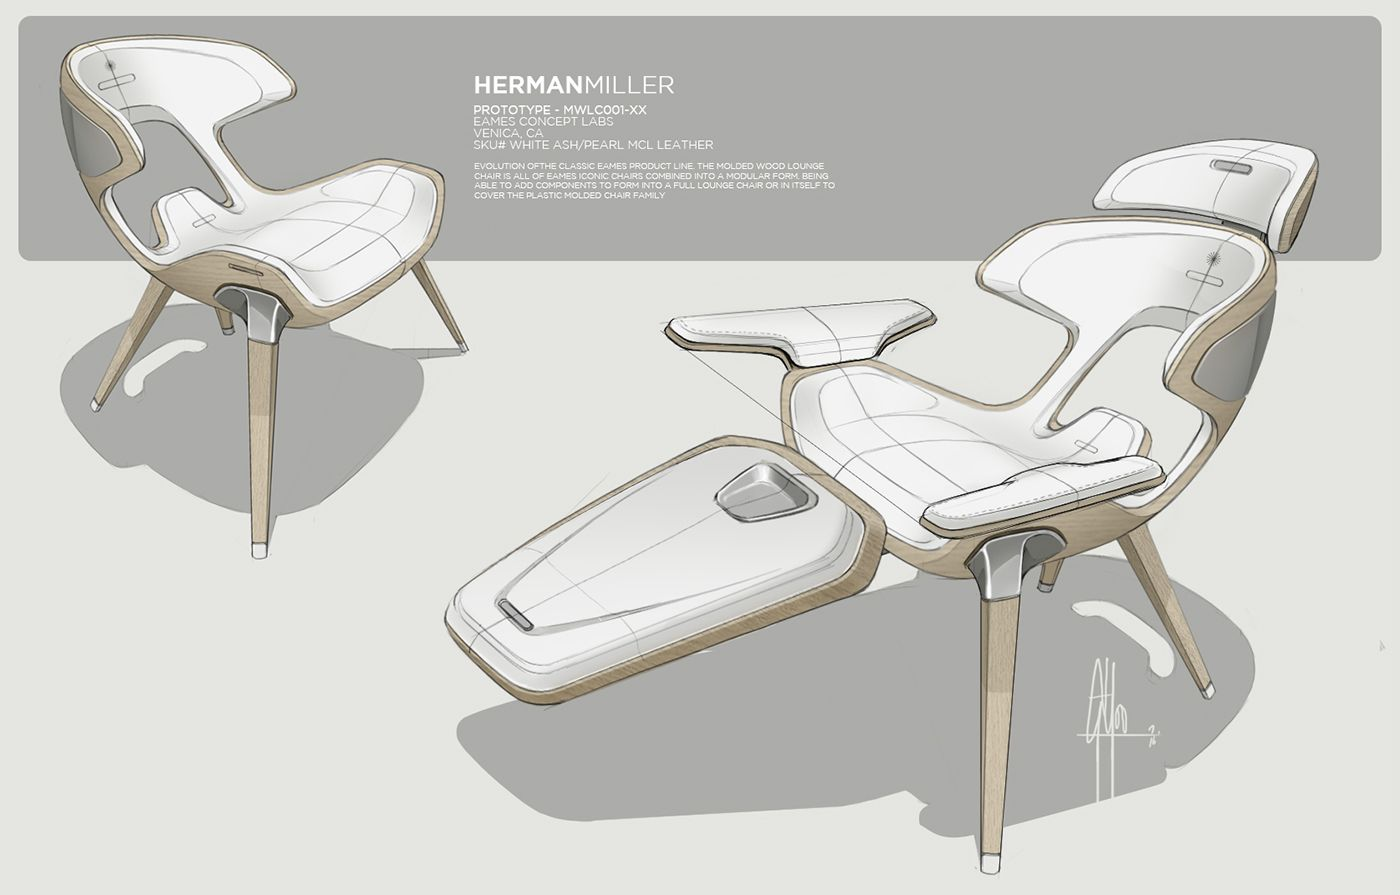 Furniture Sketches Iconic Furniture Series Mini Project On Behance Sketches